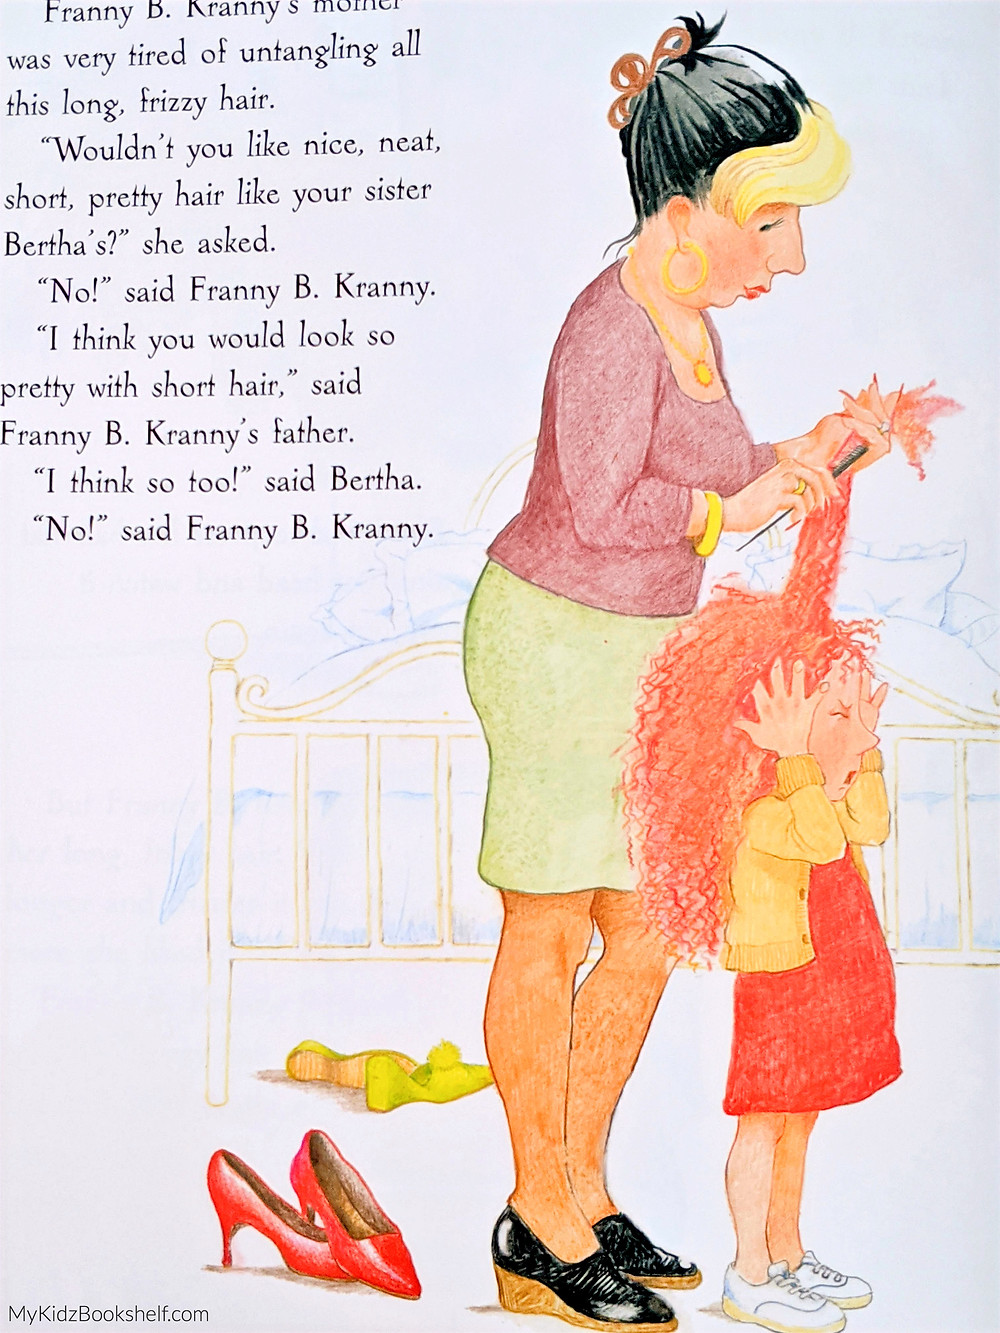 Franny B. Kranny There's A Bird in Your Hair illustration has her mom trying to comb through her long curly red hair with girl squinting eyes shut